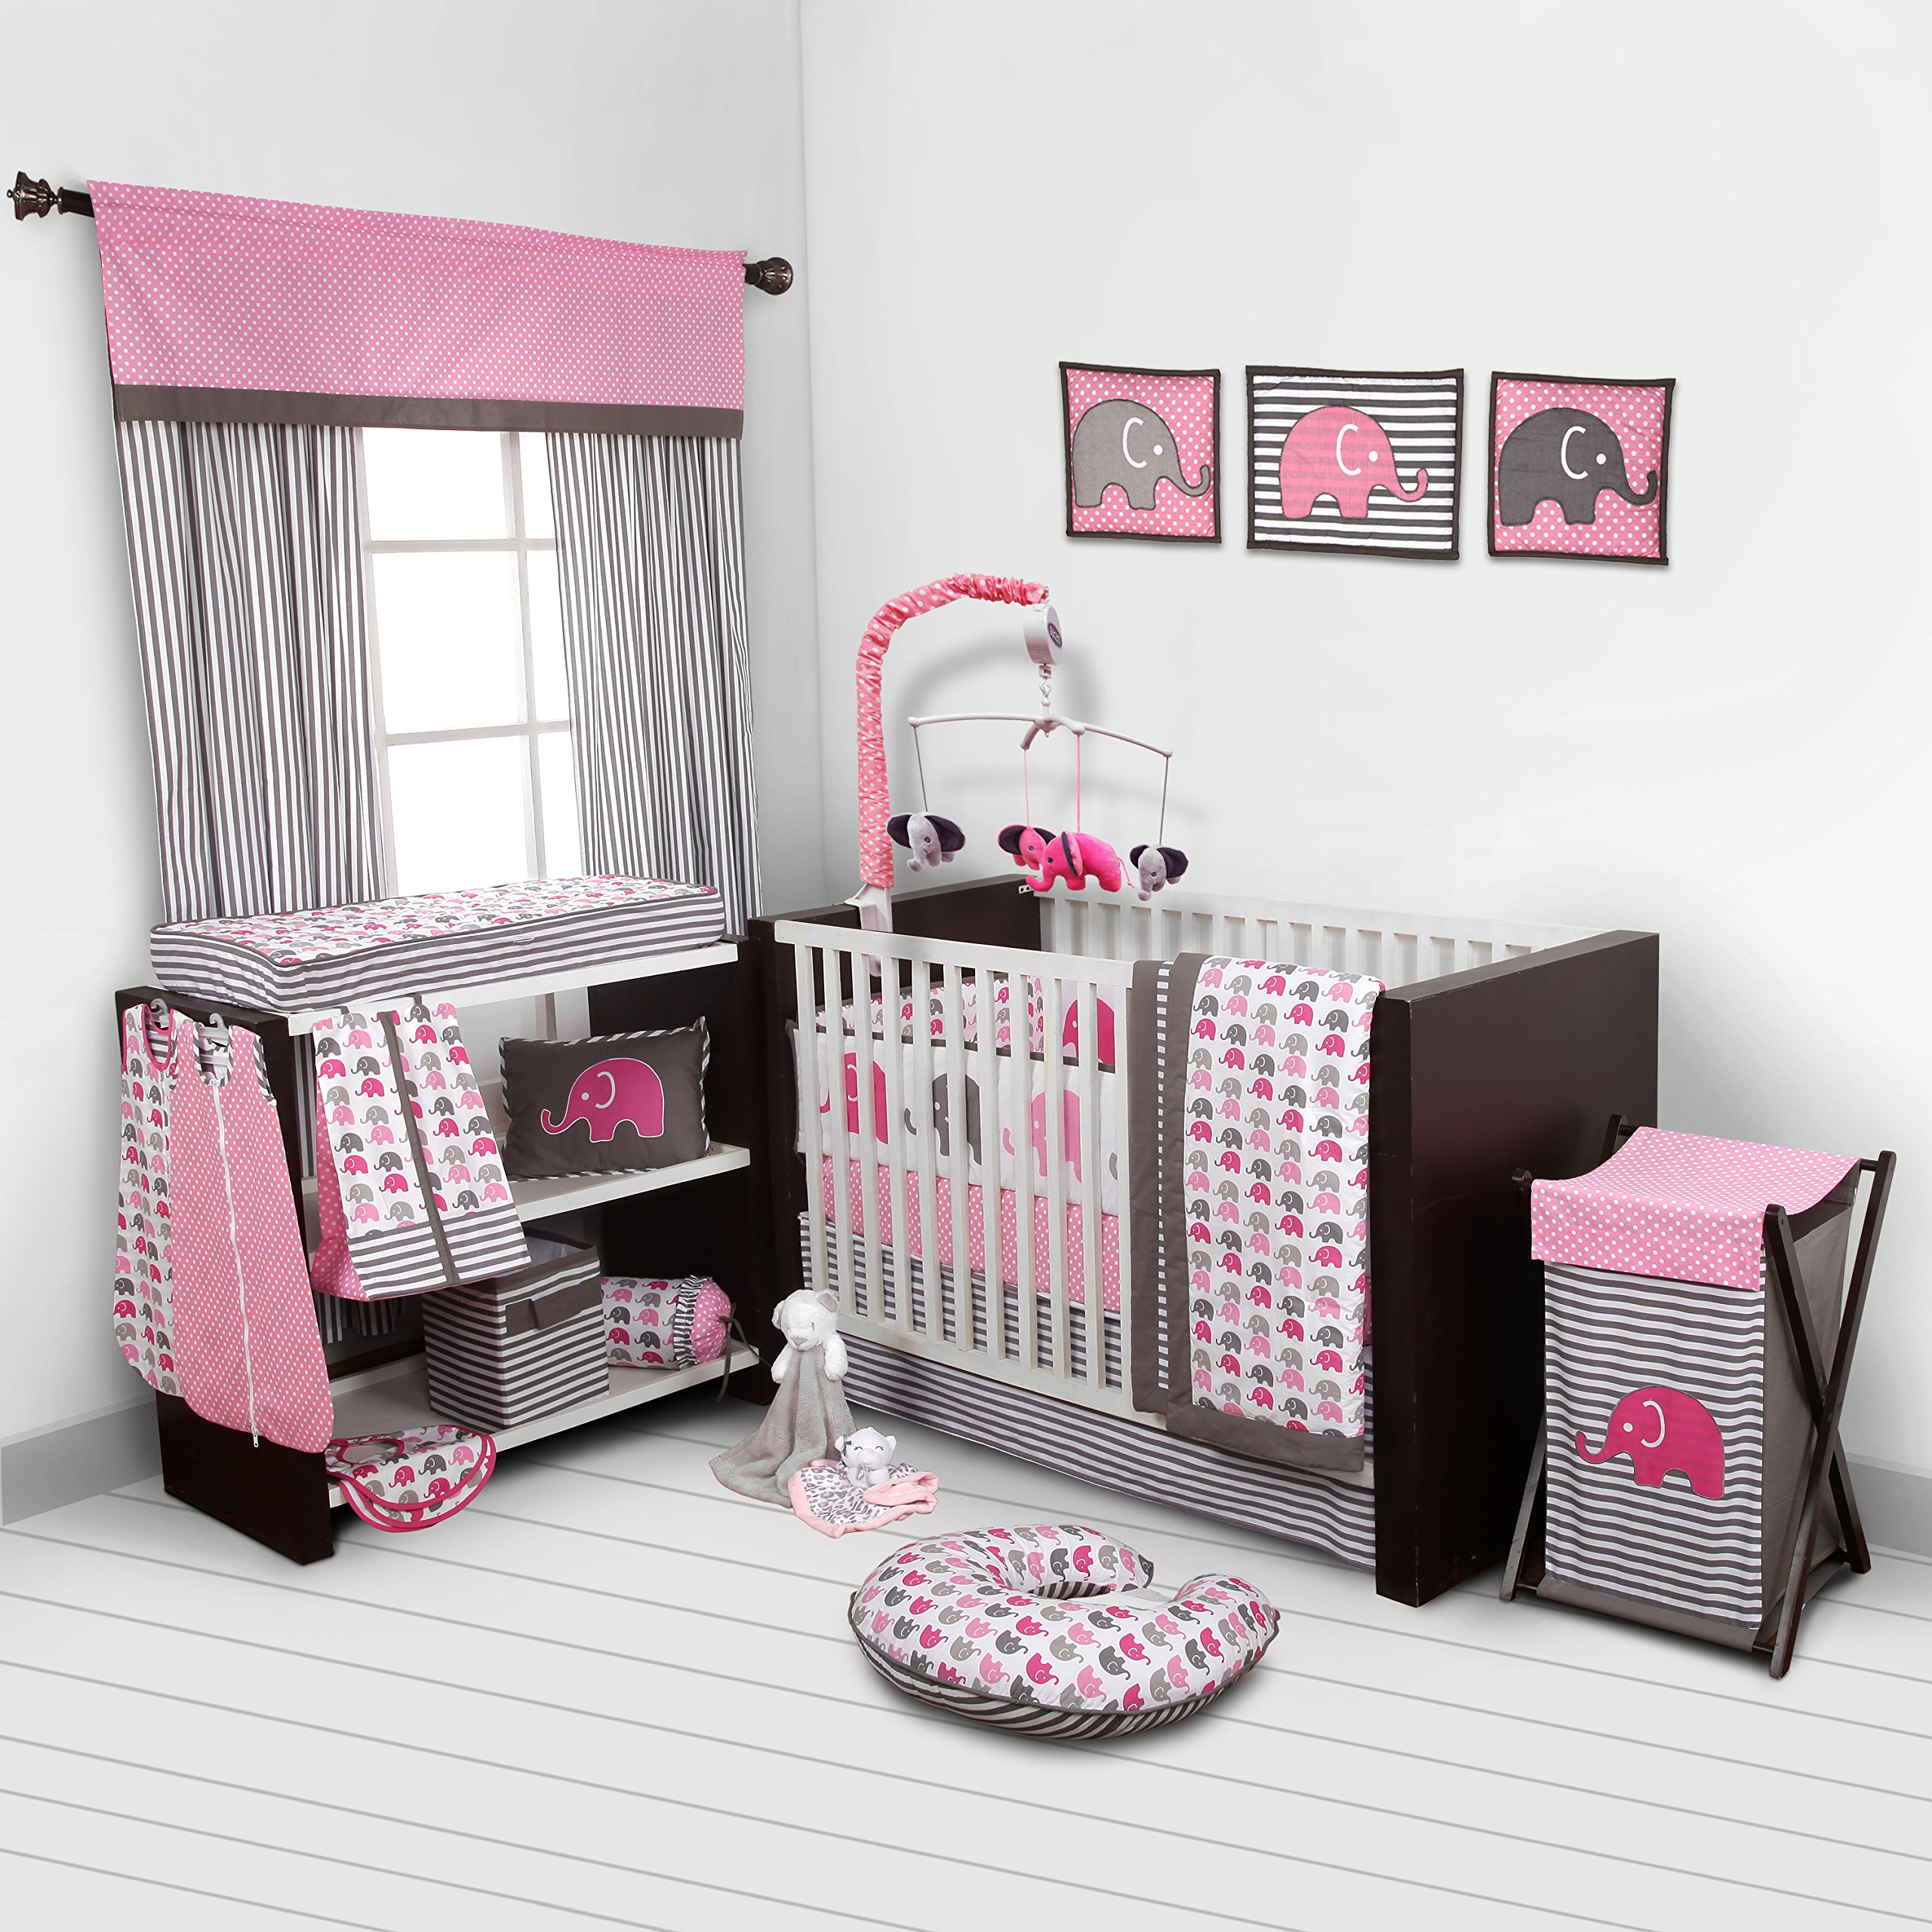 Details about Baby Girl Bedroom Set Nursery Bedding Elephants Pink Grey 10  pc Crib Infant Room